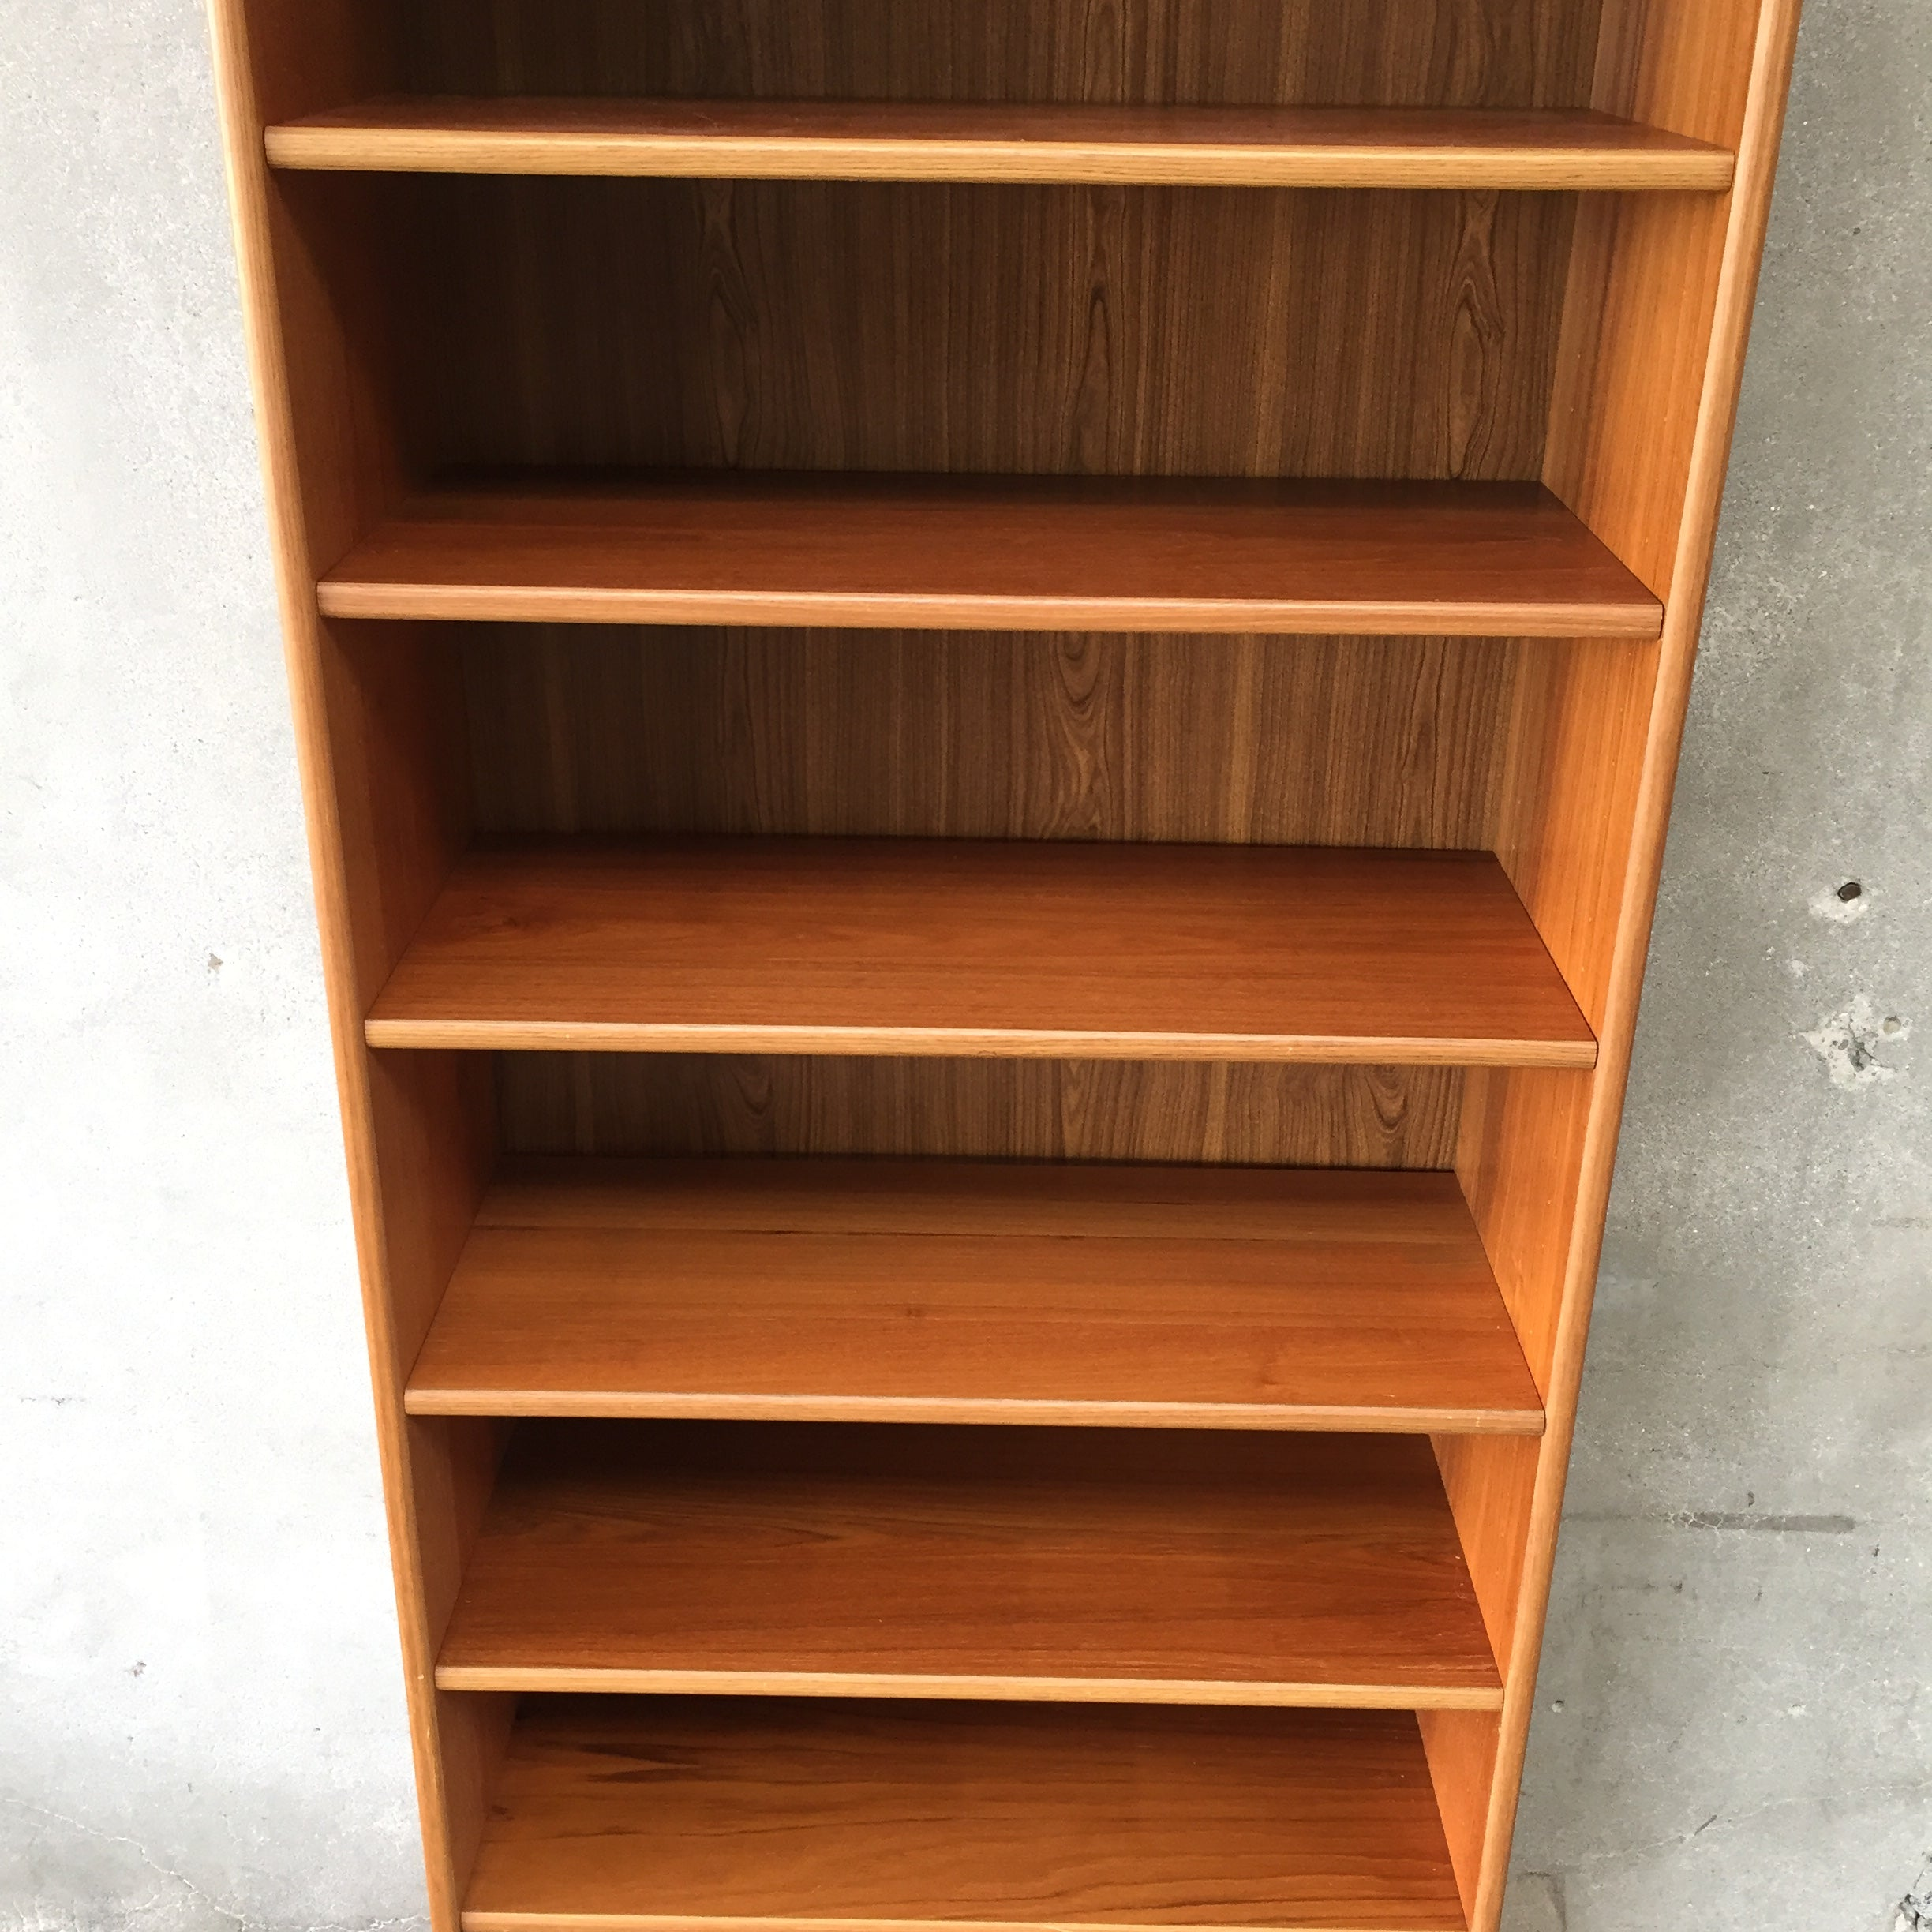 files built inspiration bookcase uncategorized for and marvelous to pic a extraordinary unbelievable how shelves doors units in bookcases style with build wall